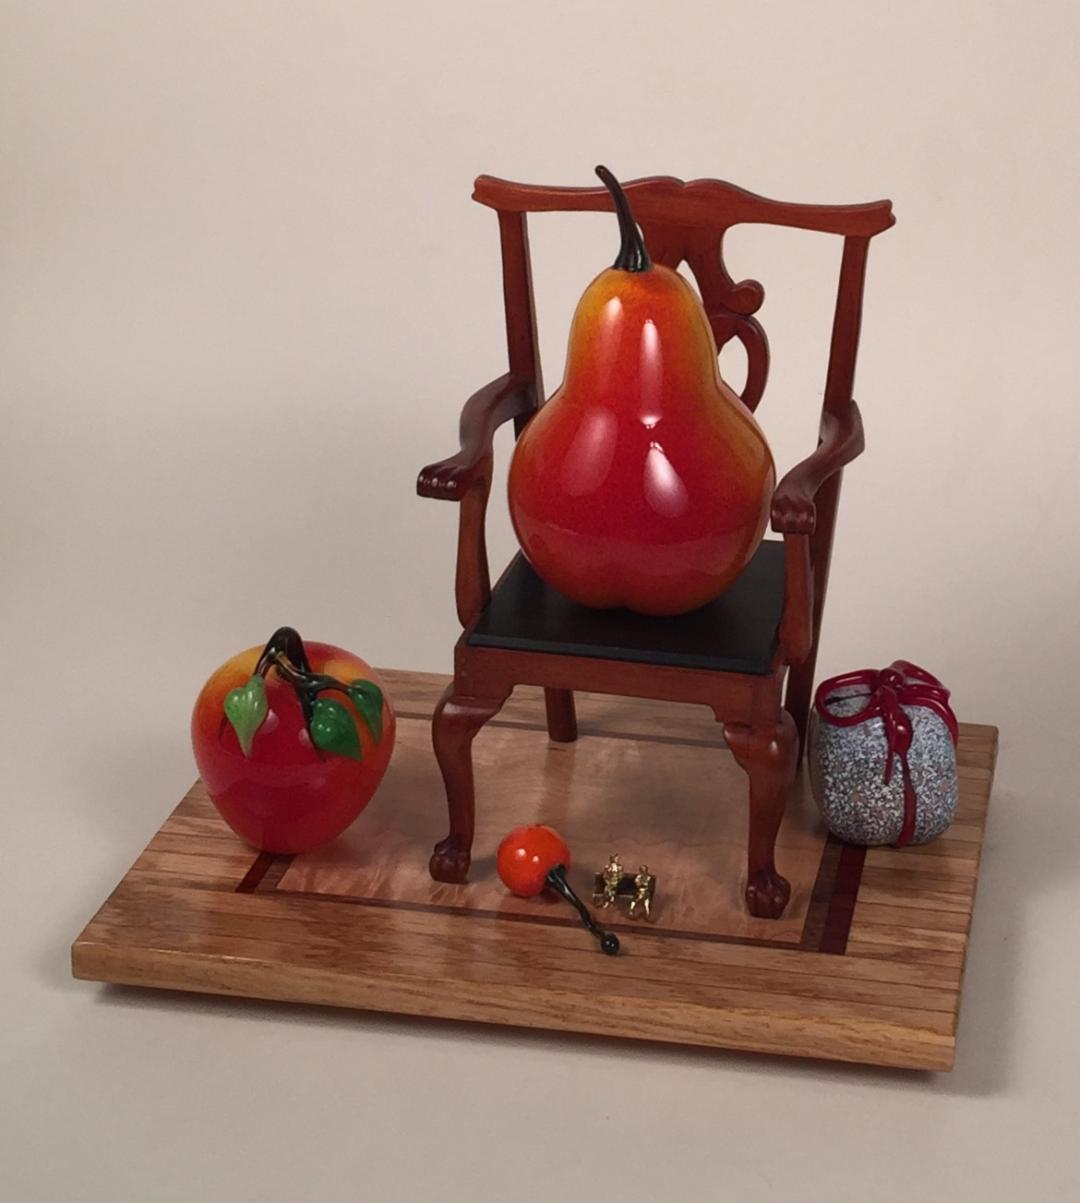 The Queen's Pear in a Chair